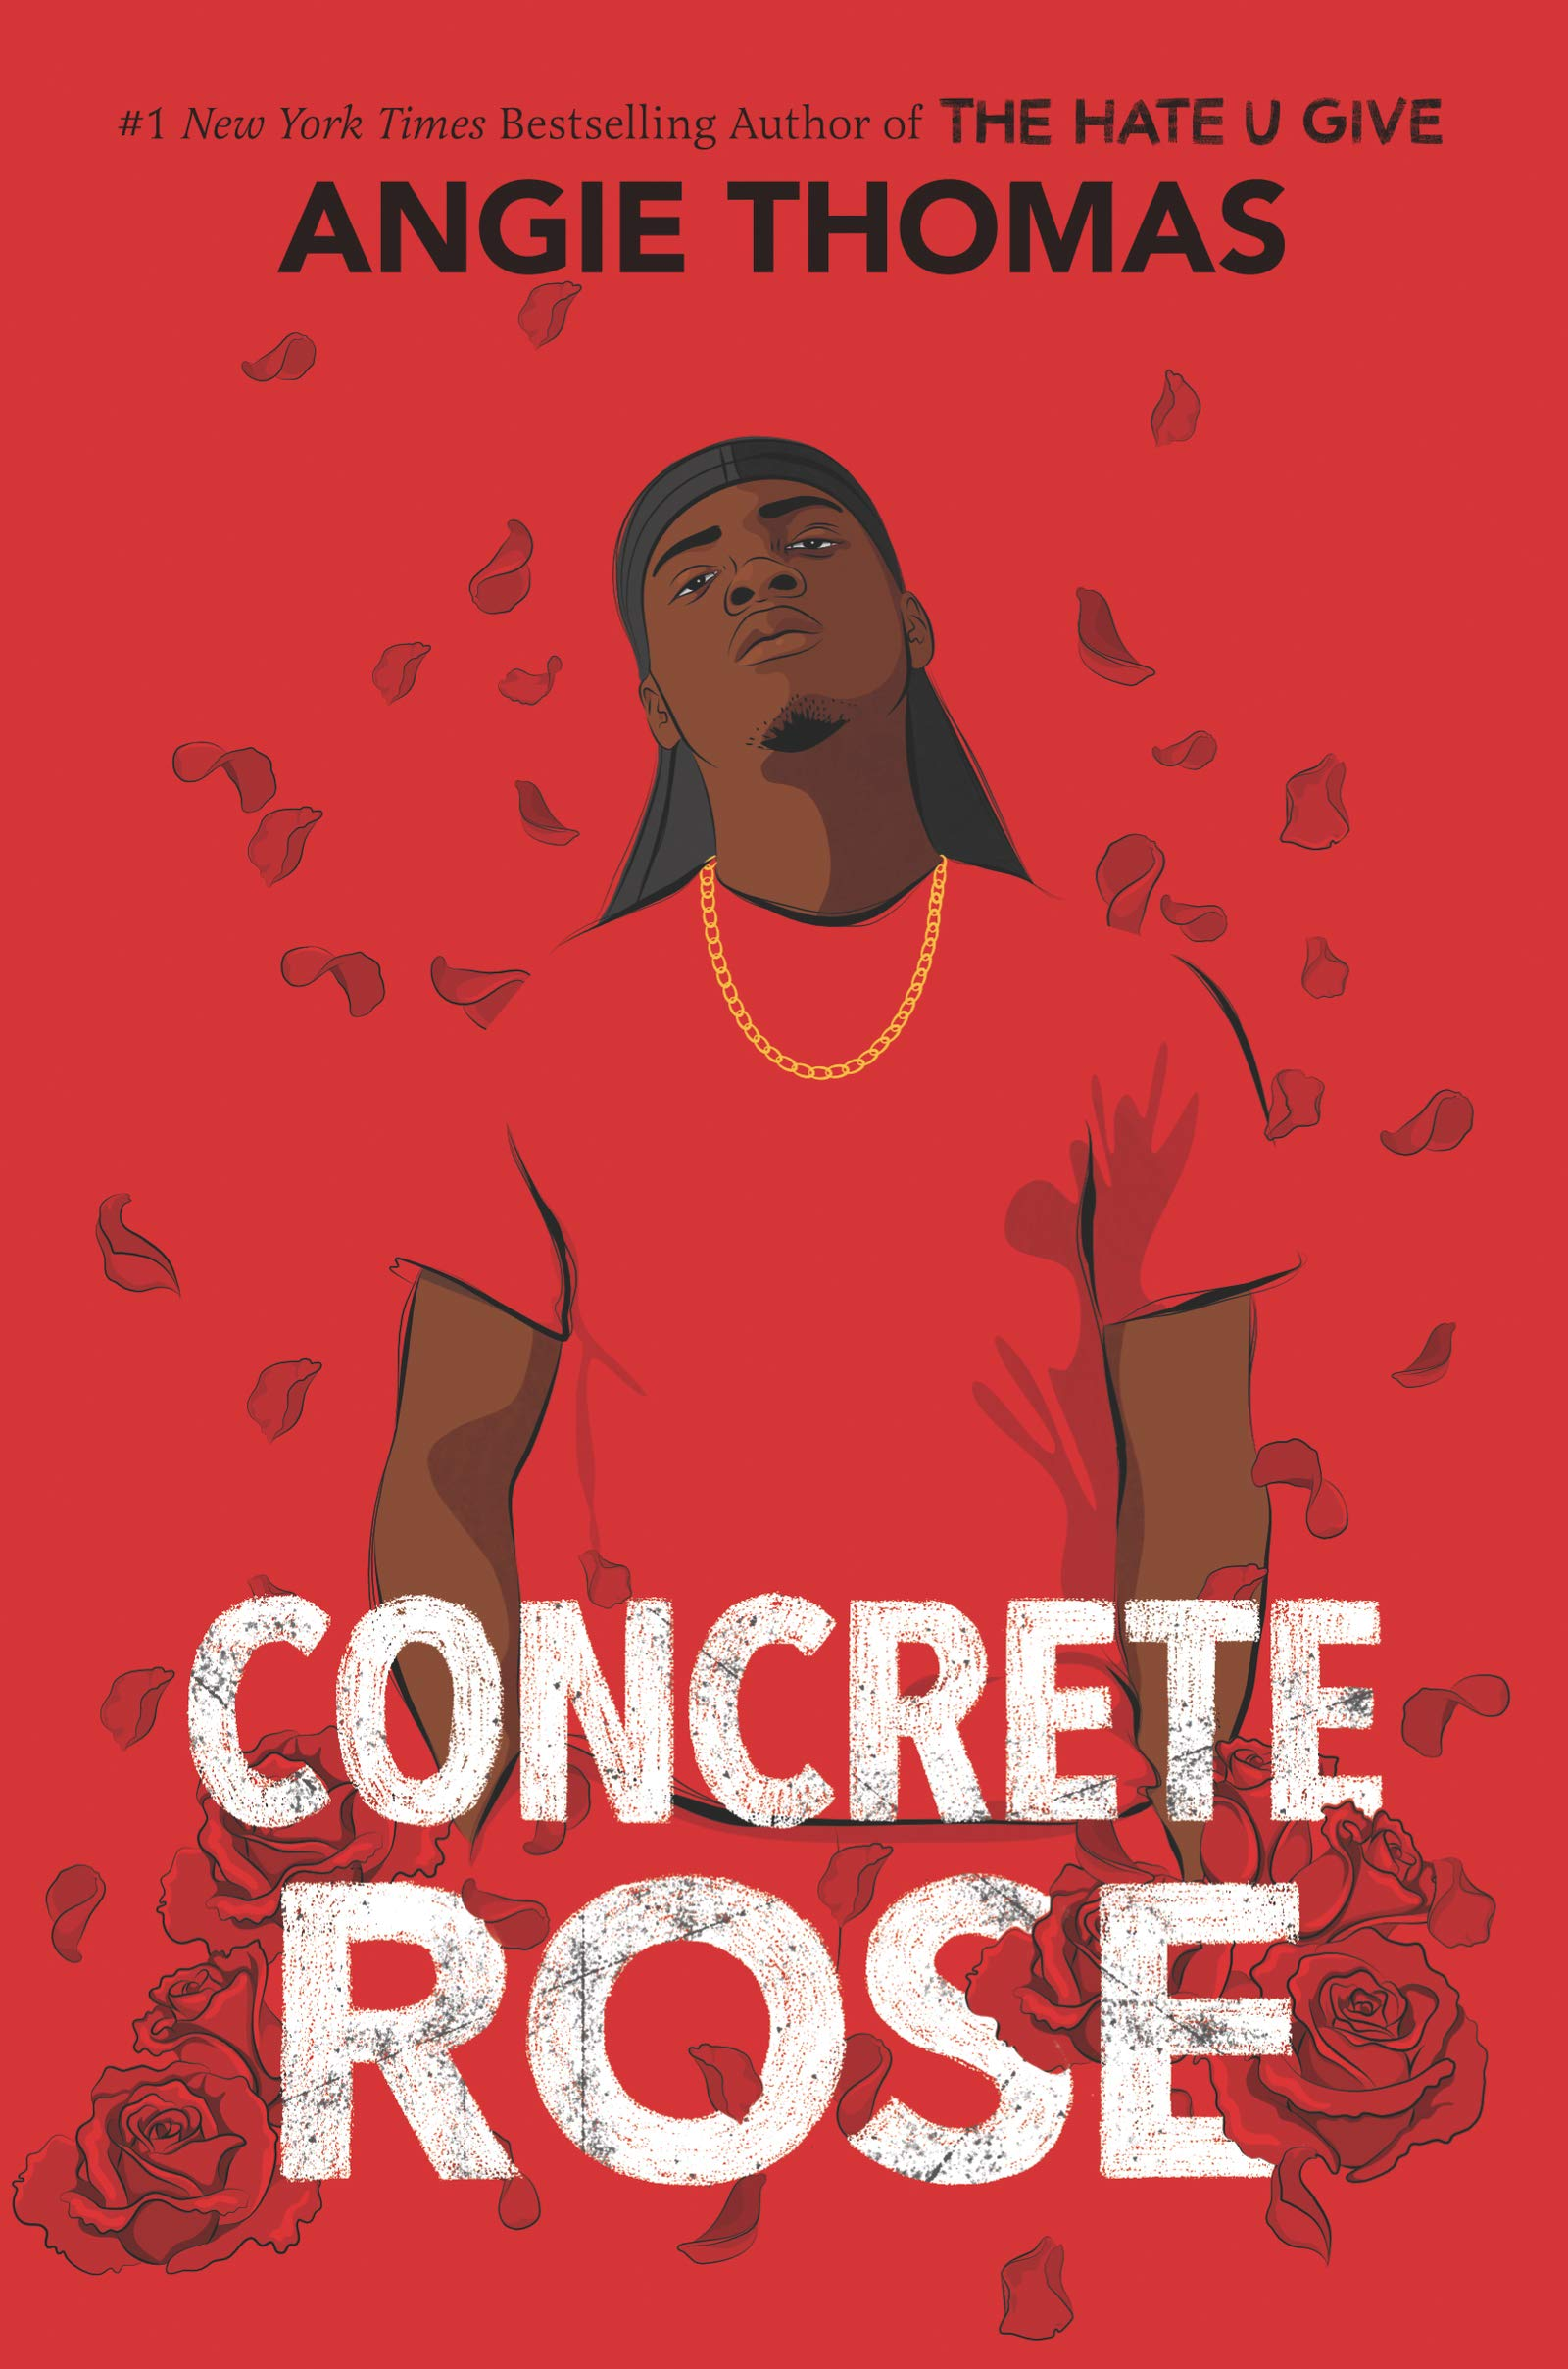 Amazon.com: Concrete Rose (9780062846716): Thomas, Angie: Books